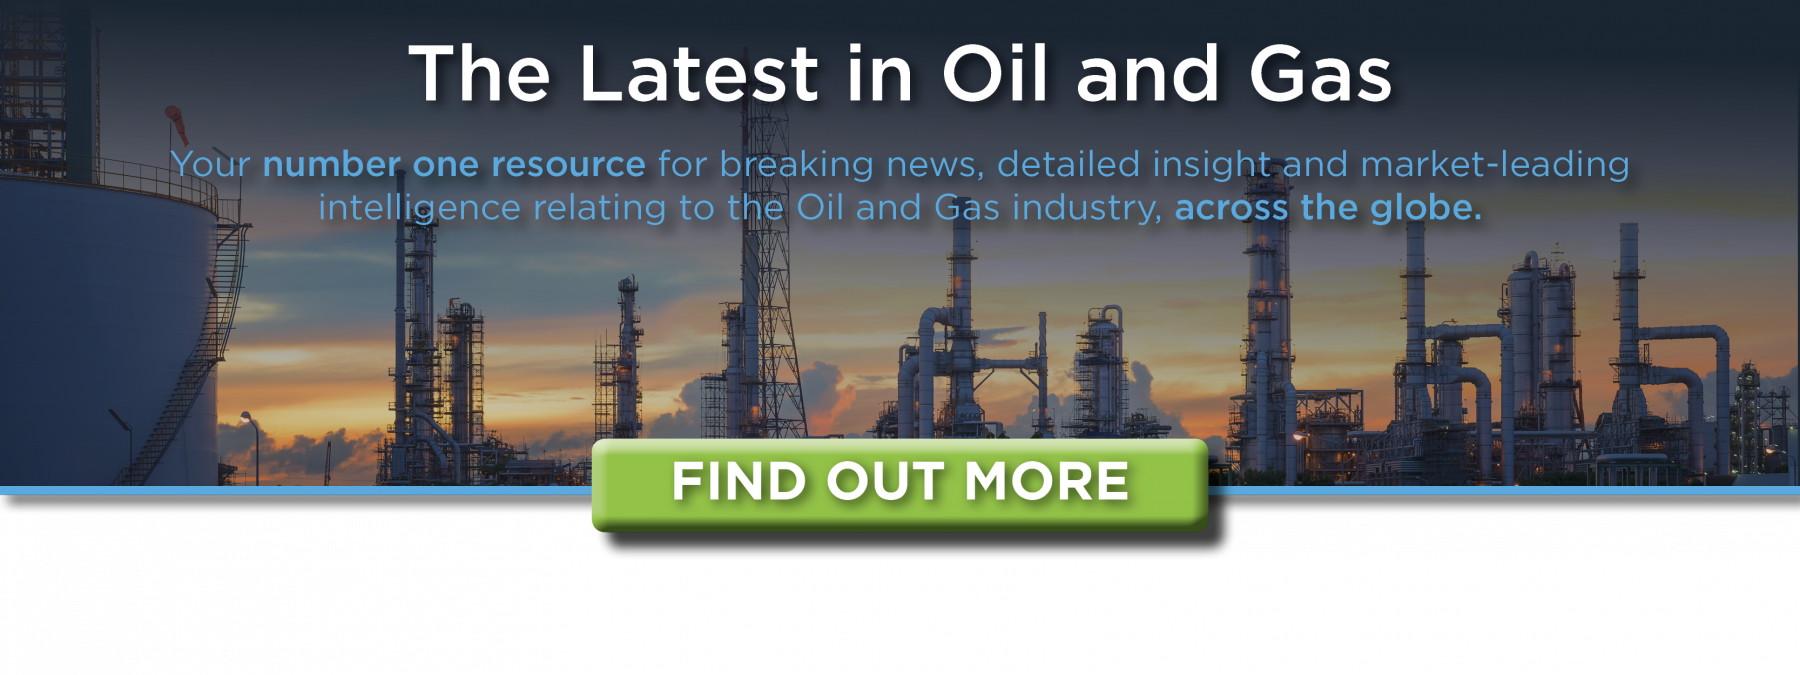 the latest news and developments from the oil and gas industry.